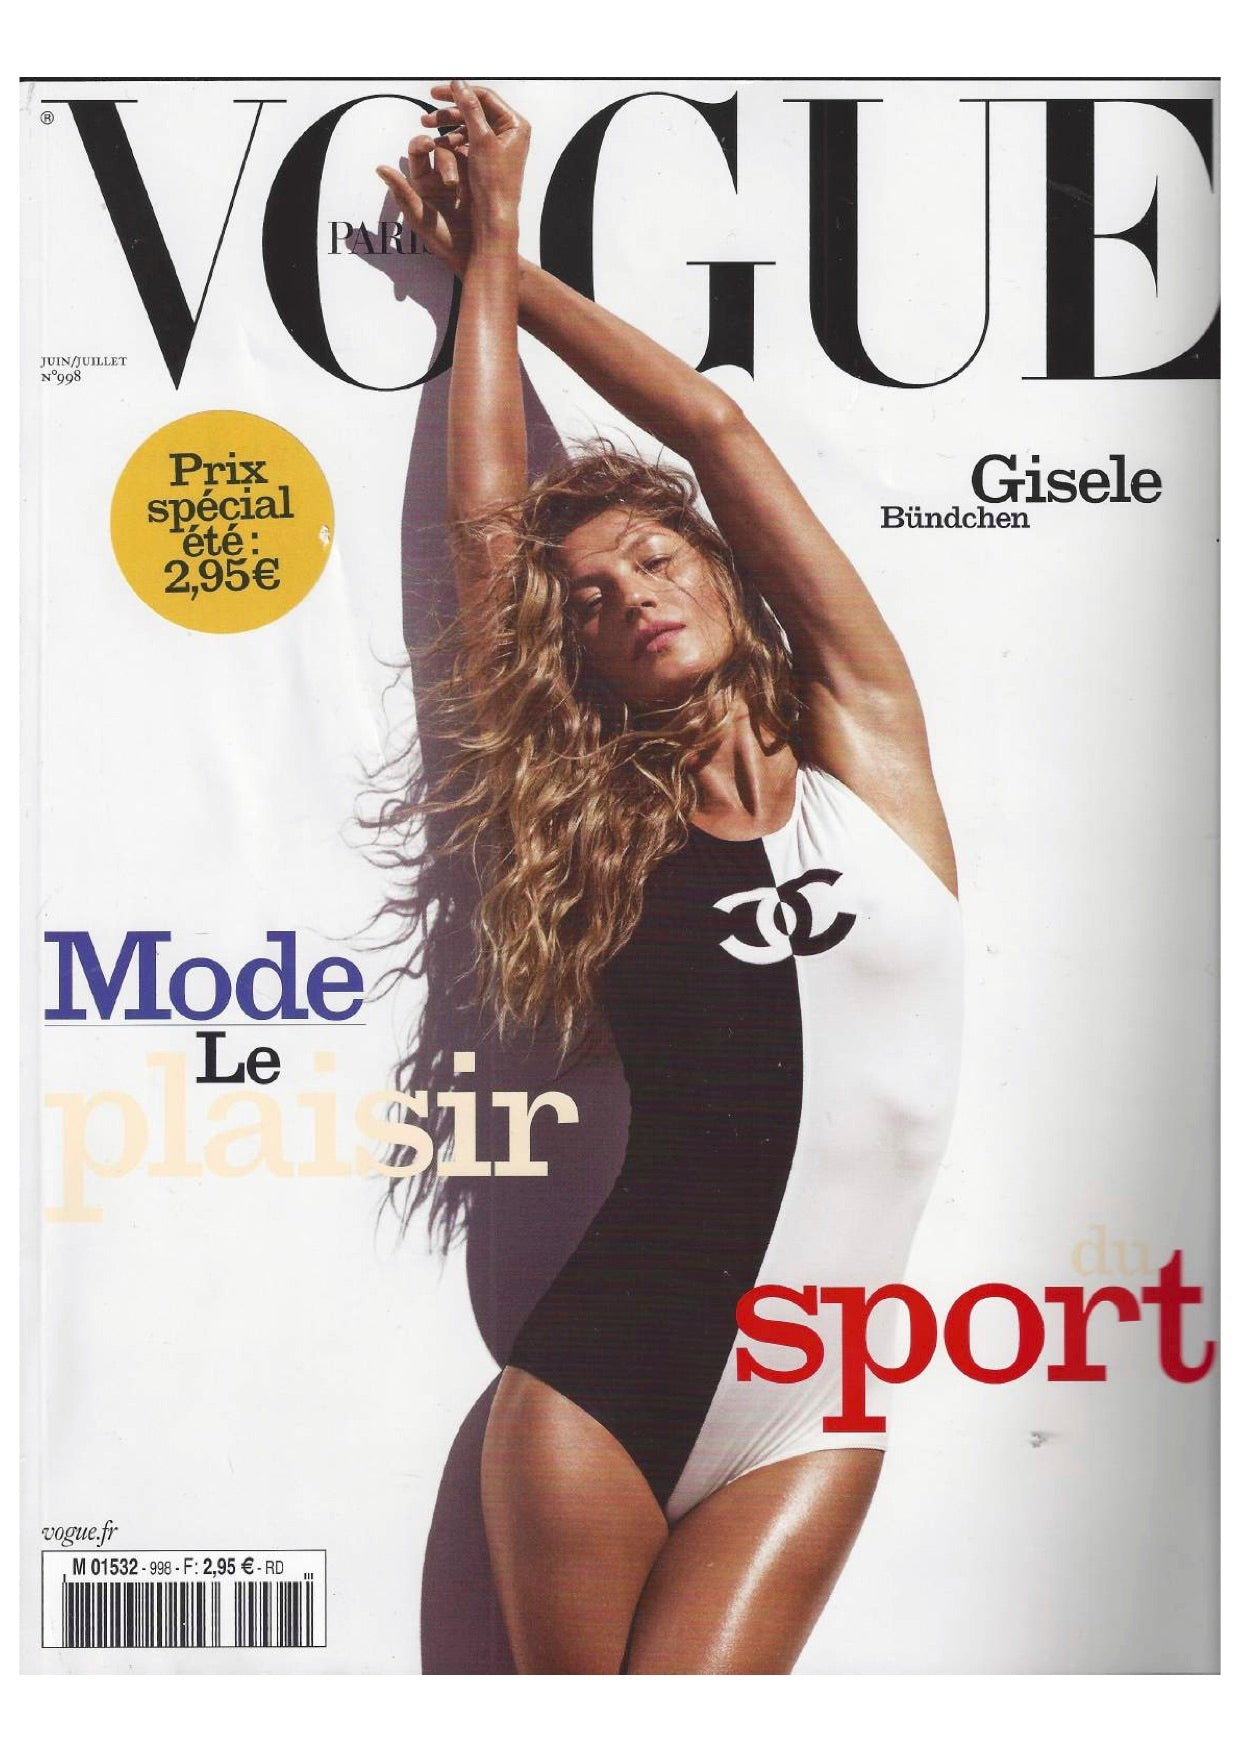 42|54 in VOGUE PARIS